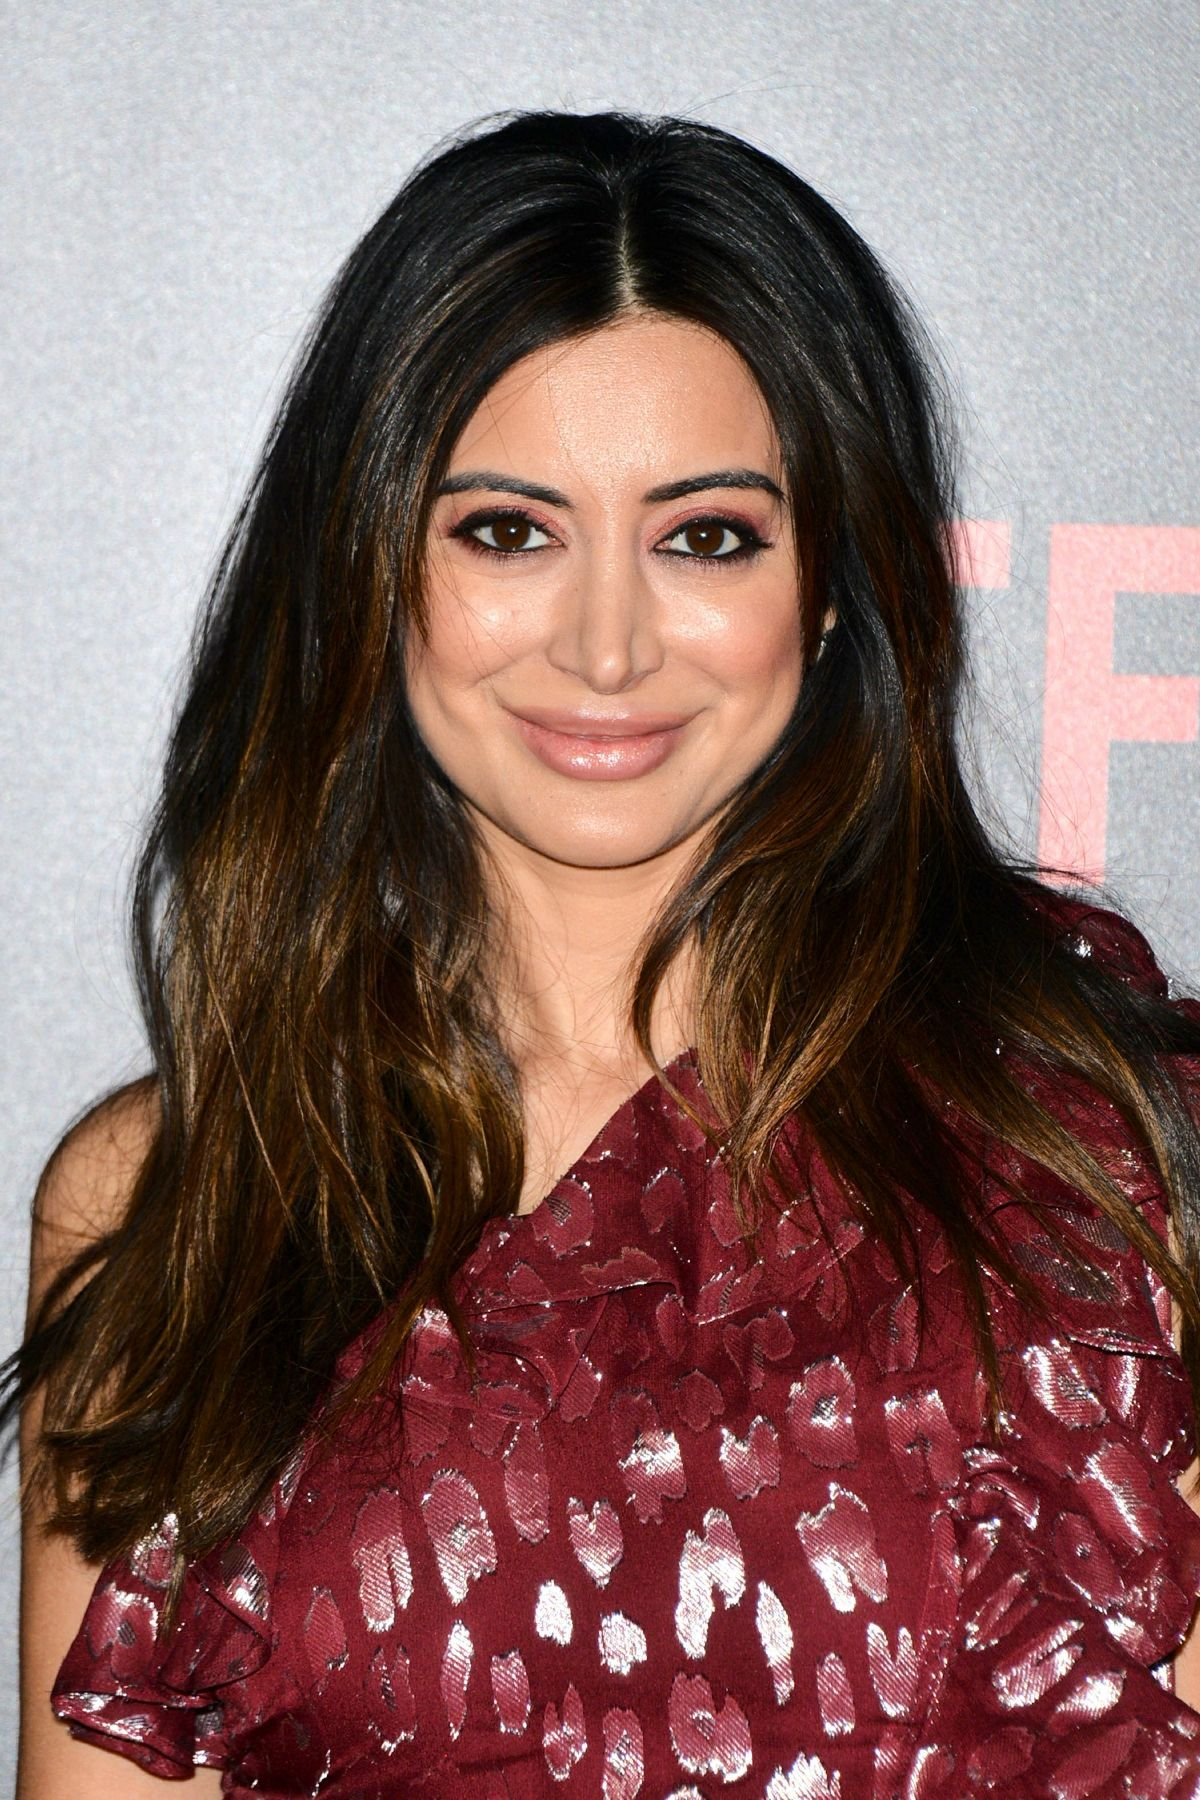 Noureen DeWulf 'When We First Met' Film Screening Pictures - Sexy Actress Pictures | Hot Actress Pictures - ActressSnaps.com